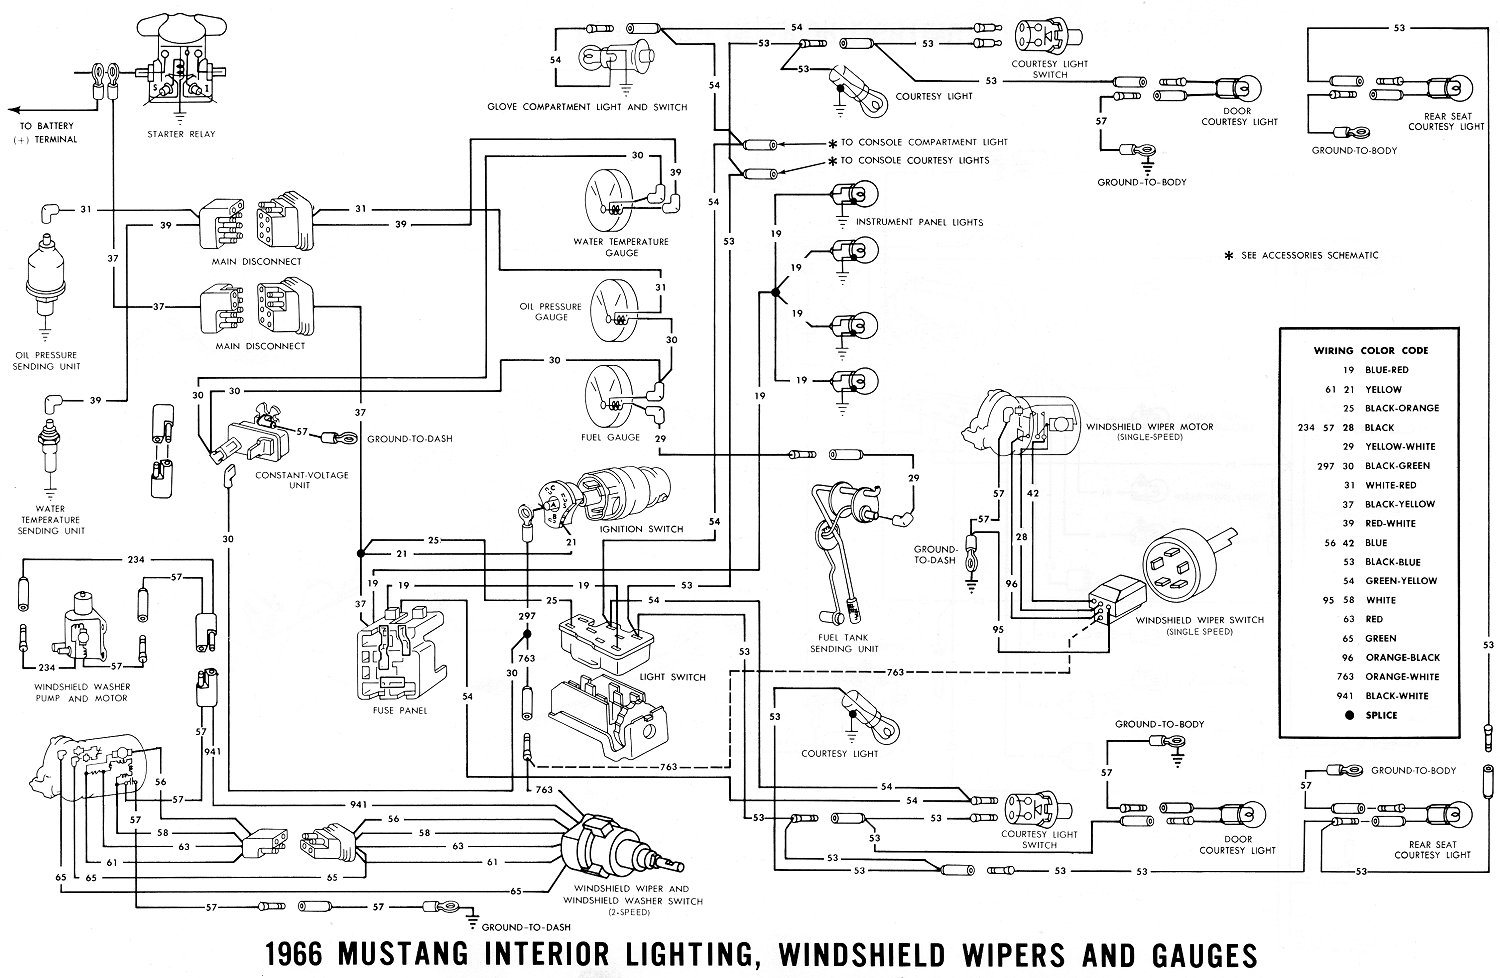 1967 Mustang Wiring Diagram Download from midlife66.com